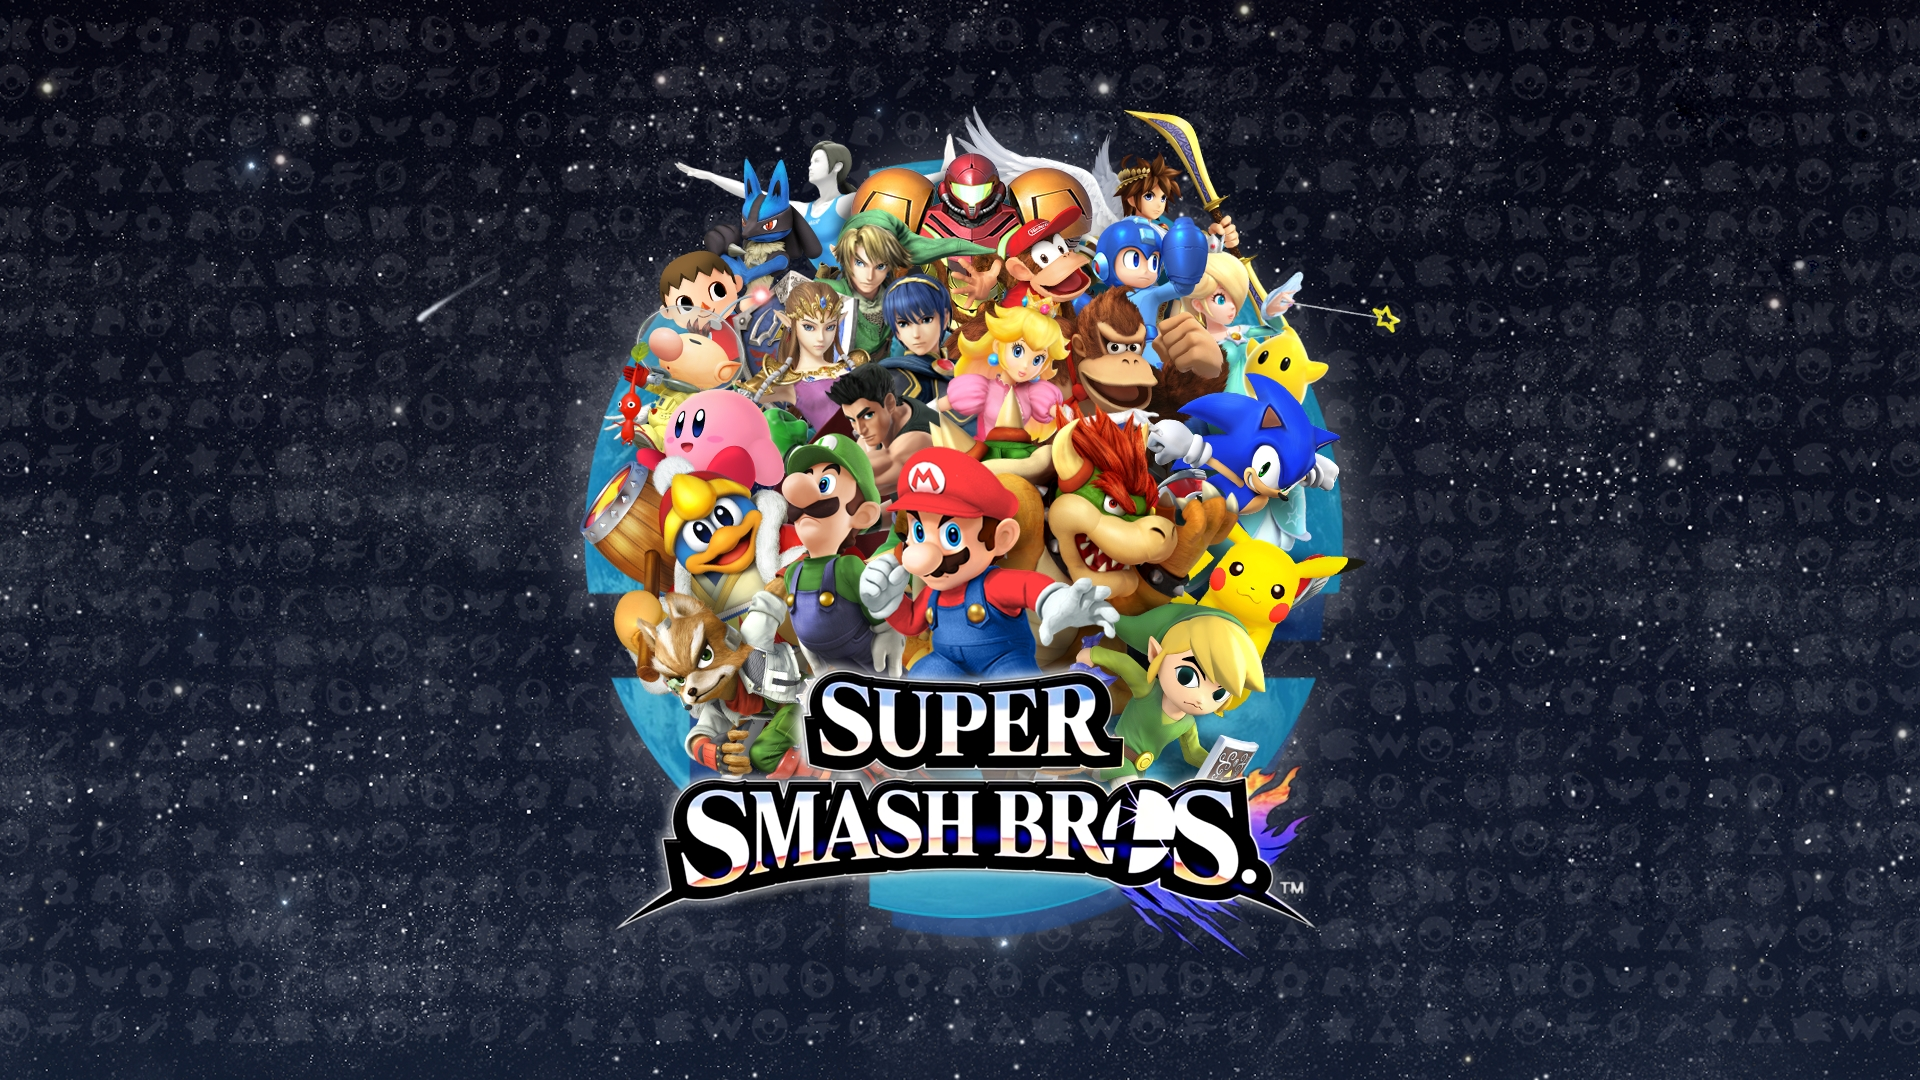 super smash bros. full hd wallpaper and background image | 1920x1080